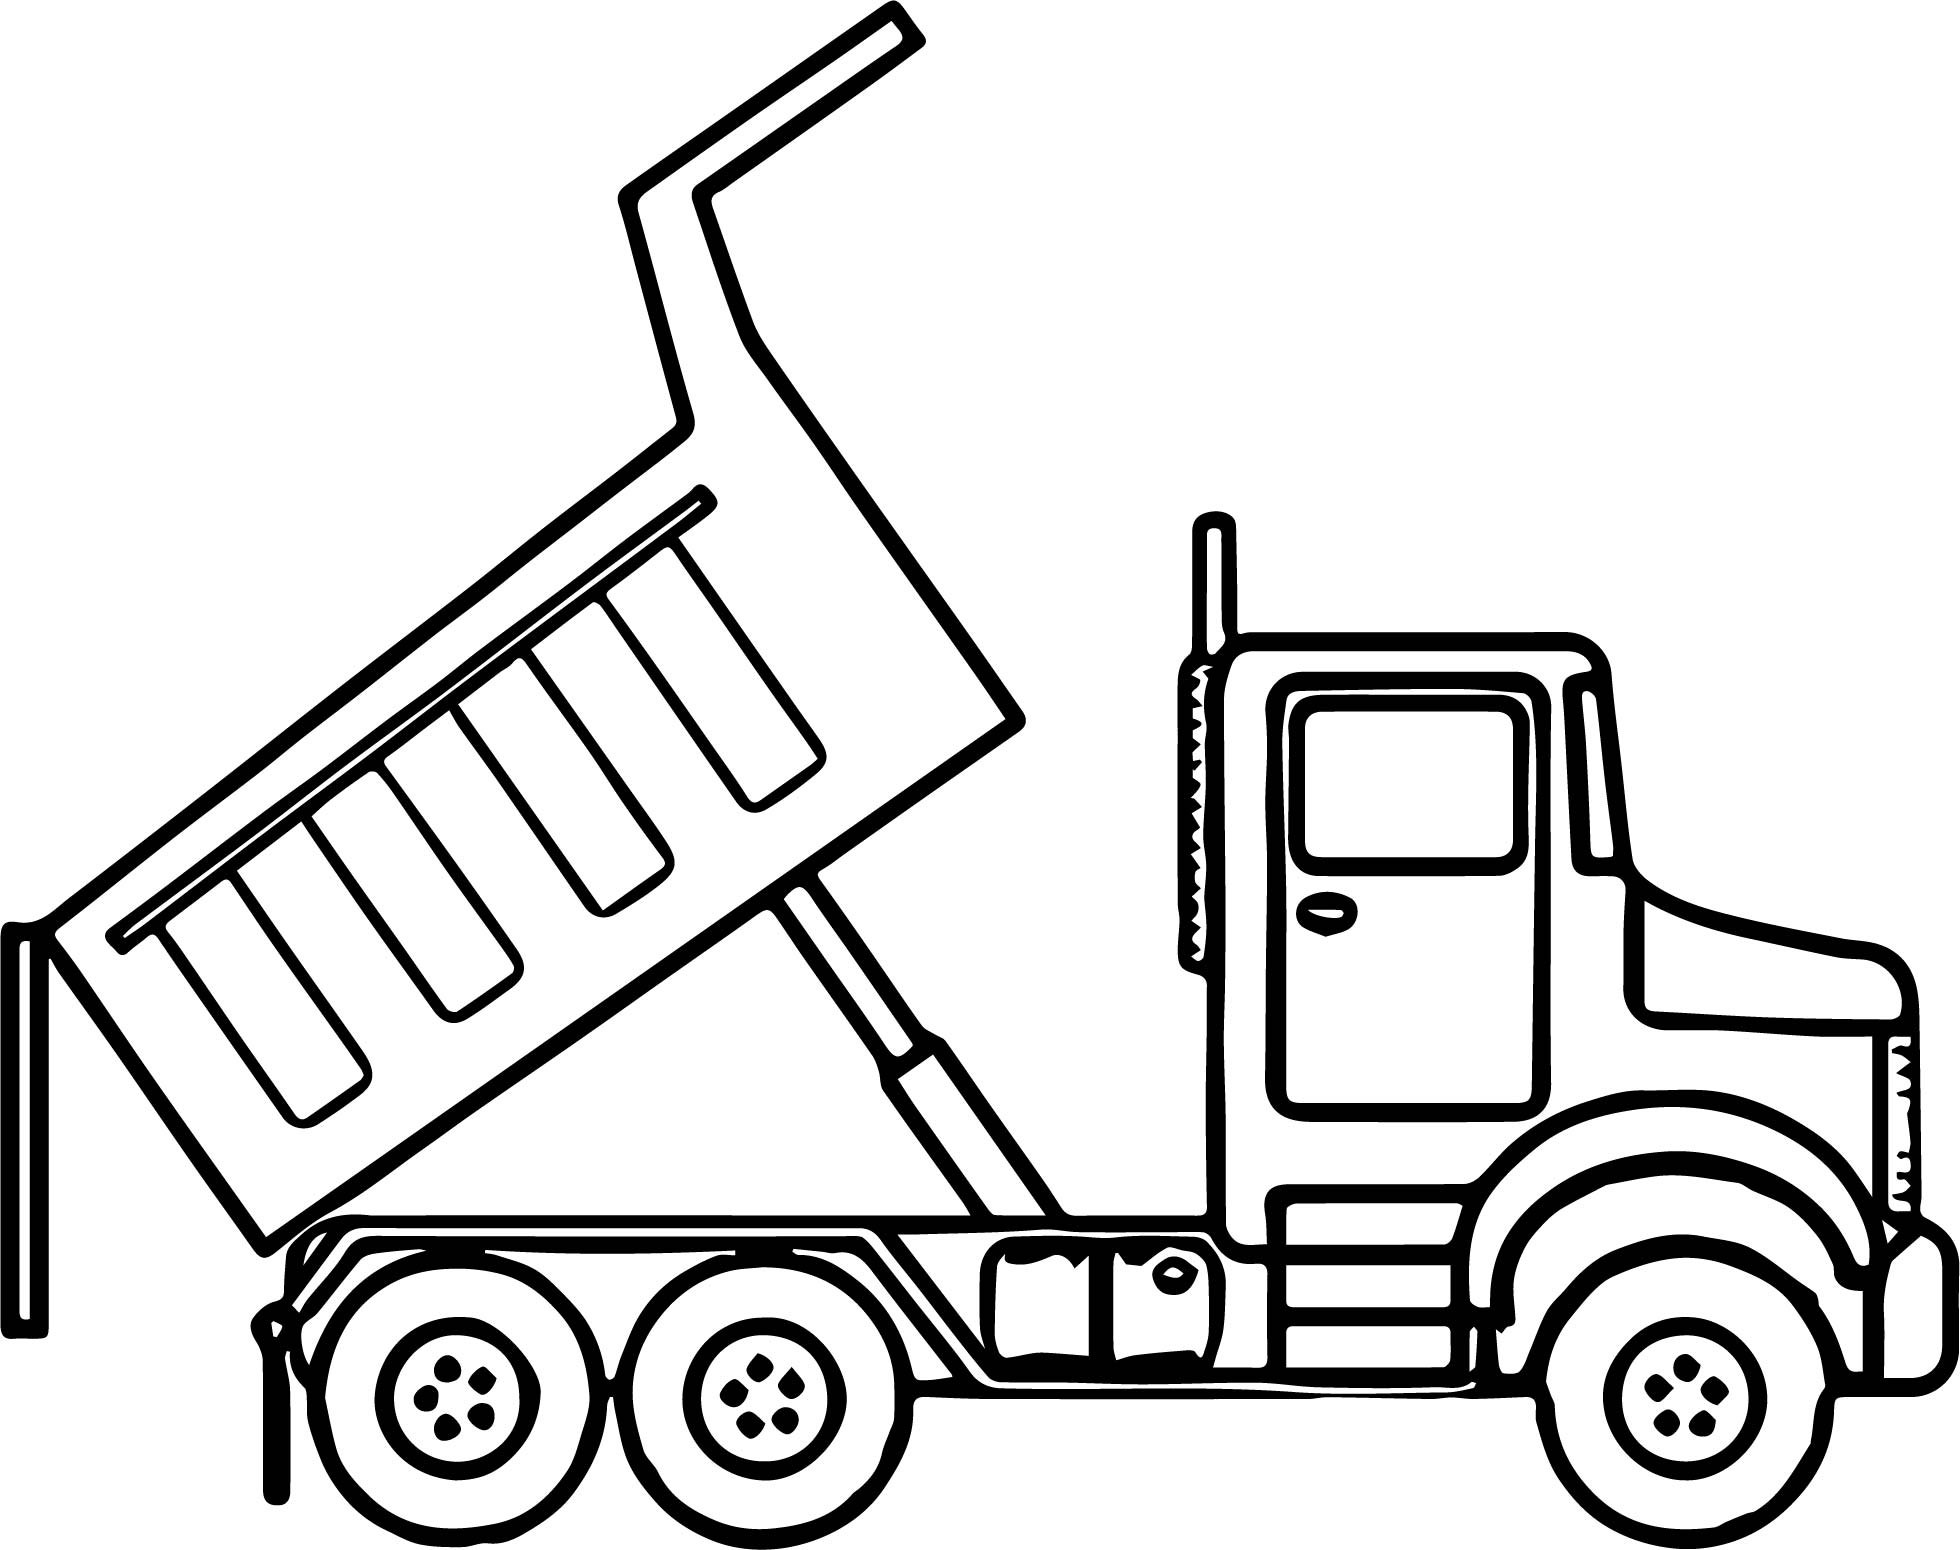 1960x1550 Dump Truck Outline Coloring Pages